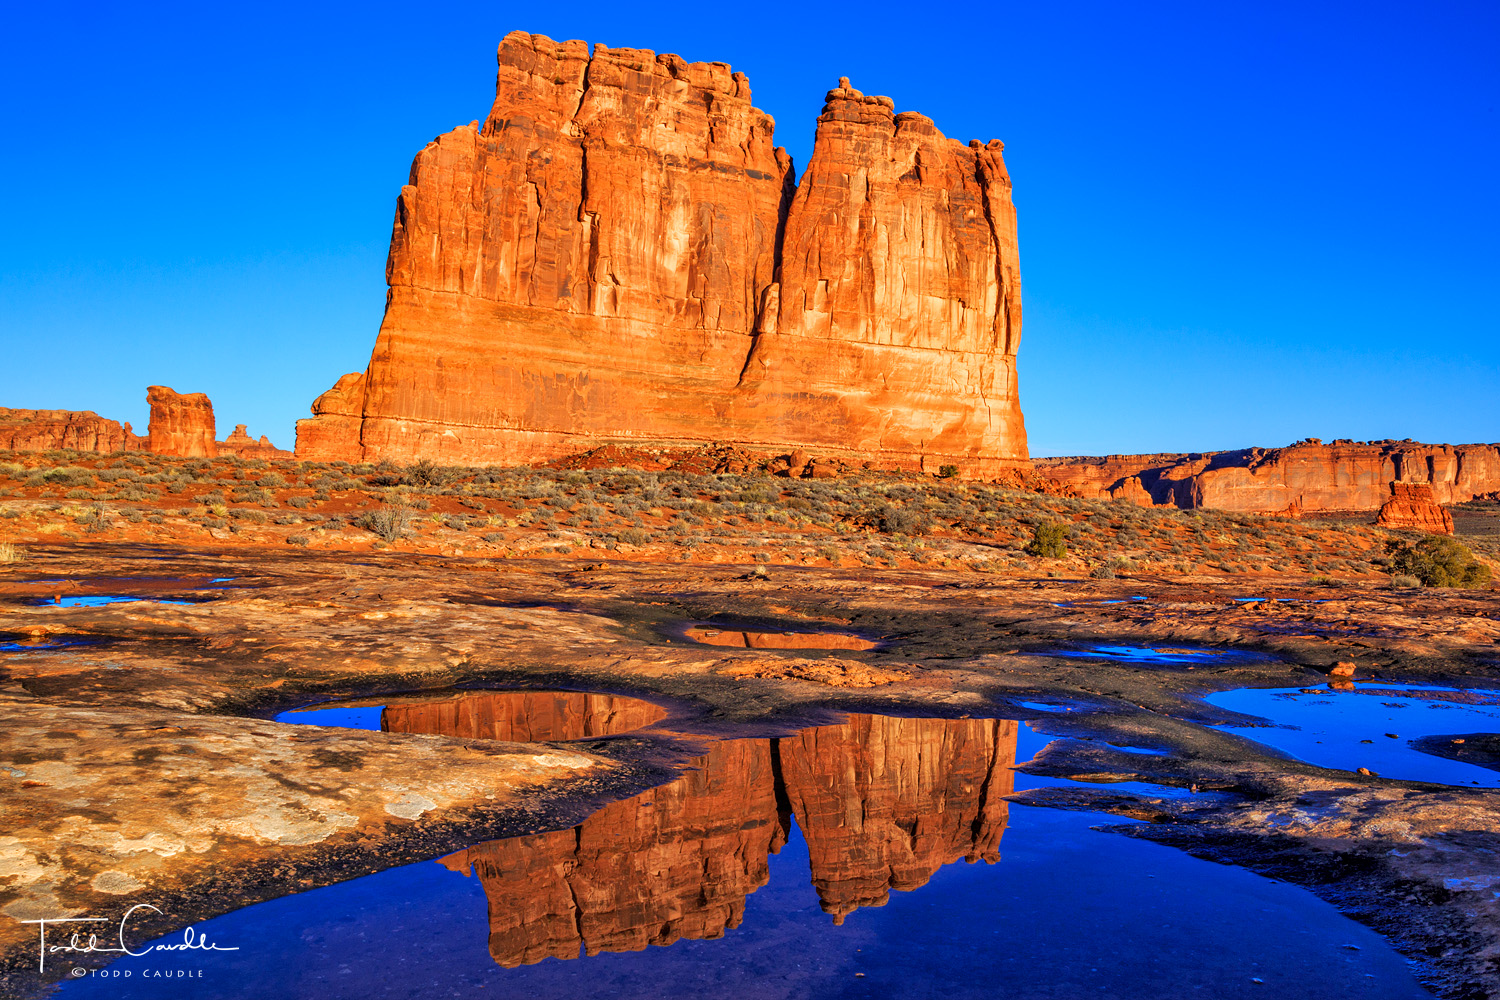 Potholes in an expanse of sandstone fill with water after overnight rains, creating fleeting reflecting pools.